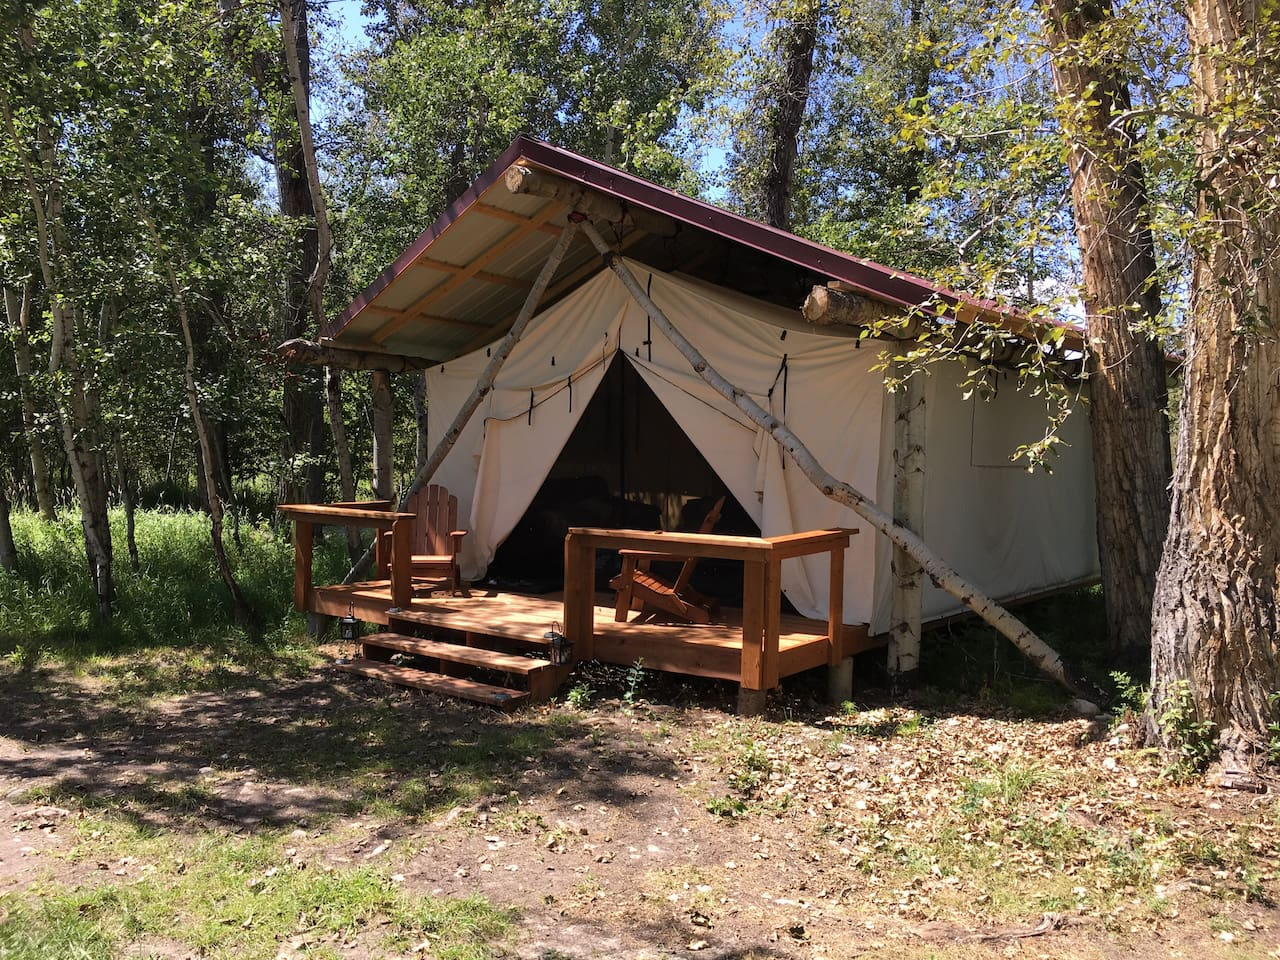 The Moose Glamping Cabin @ The Ranch